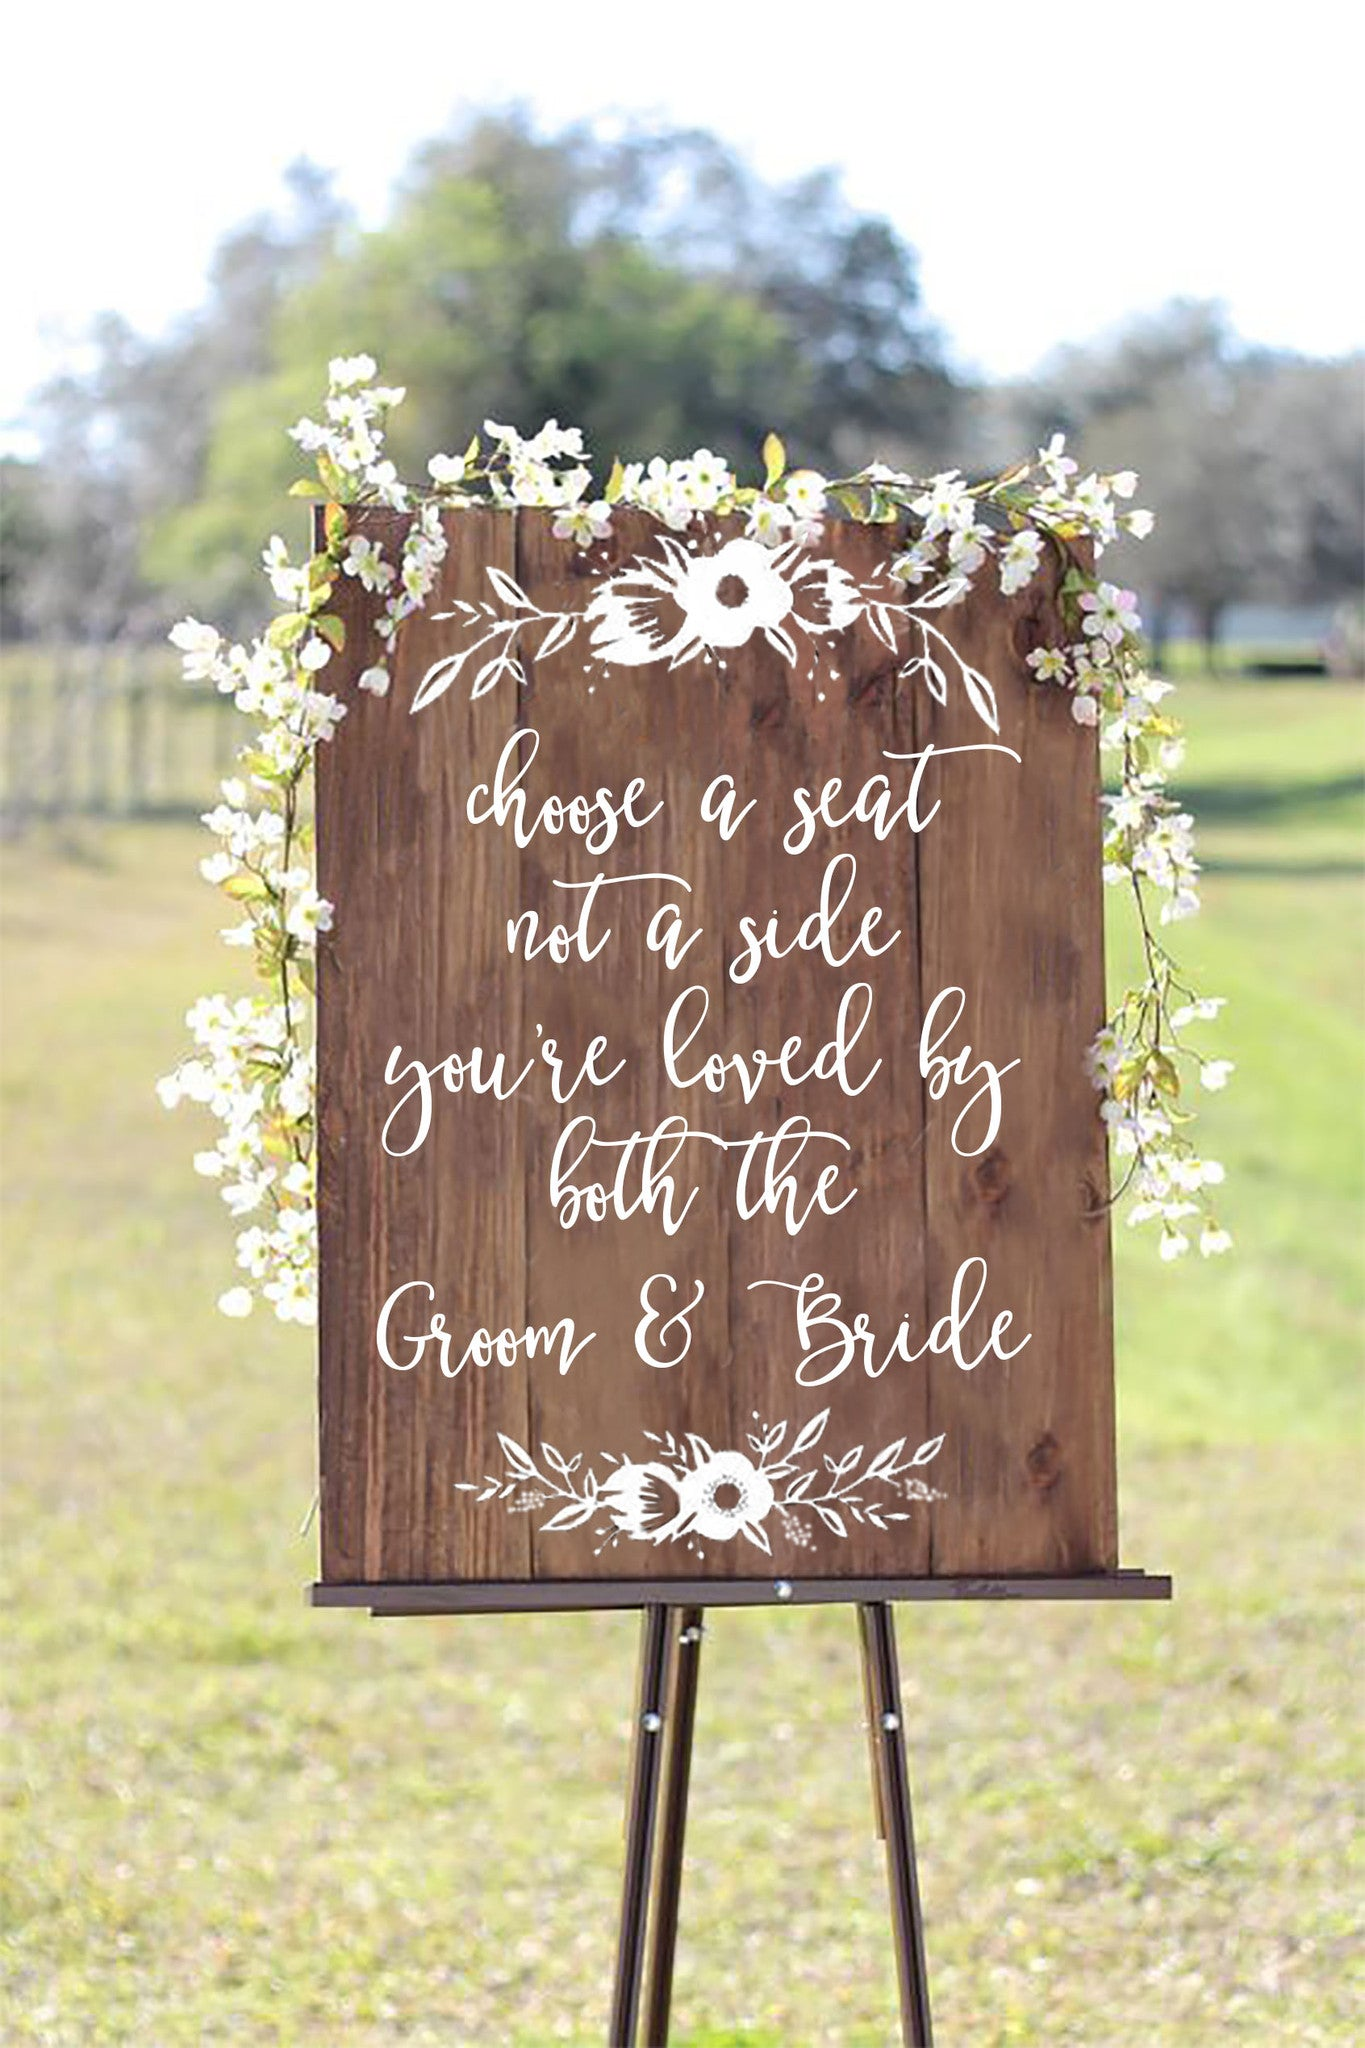 choose a seat not a side you re loved by both the groom and bride